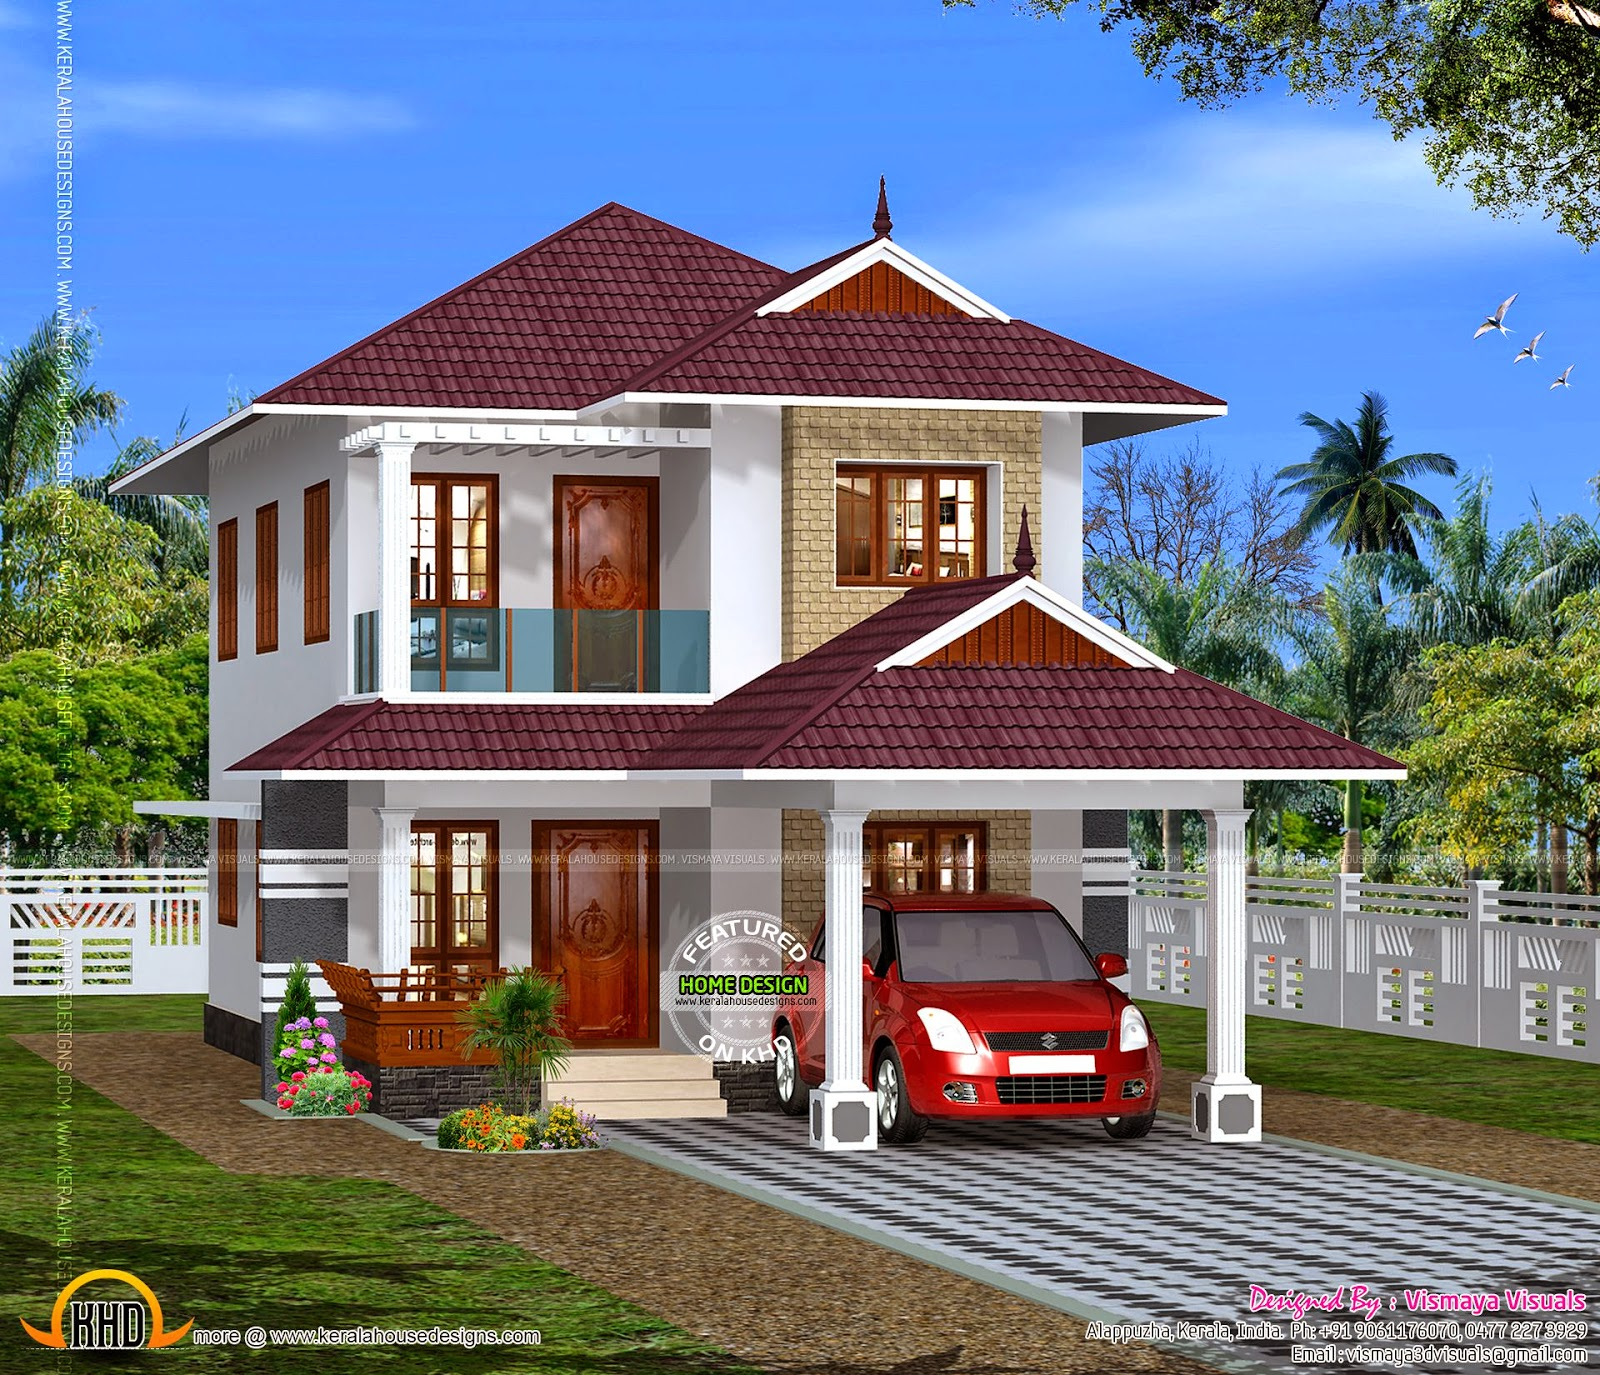 Clean box type house exterior keralahousedesigns